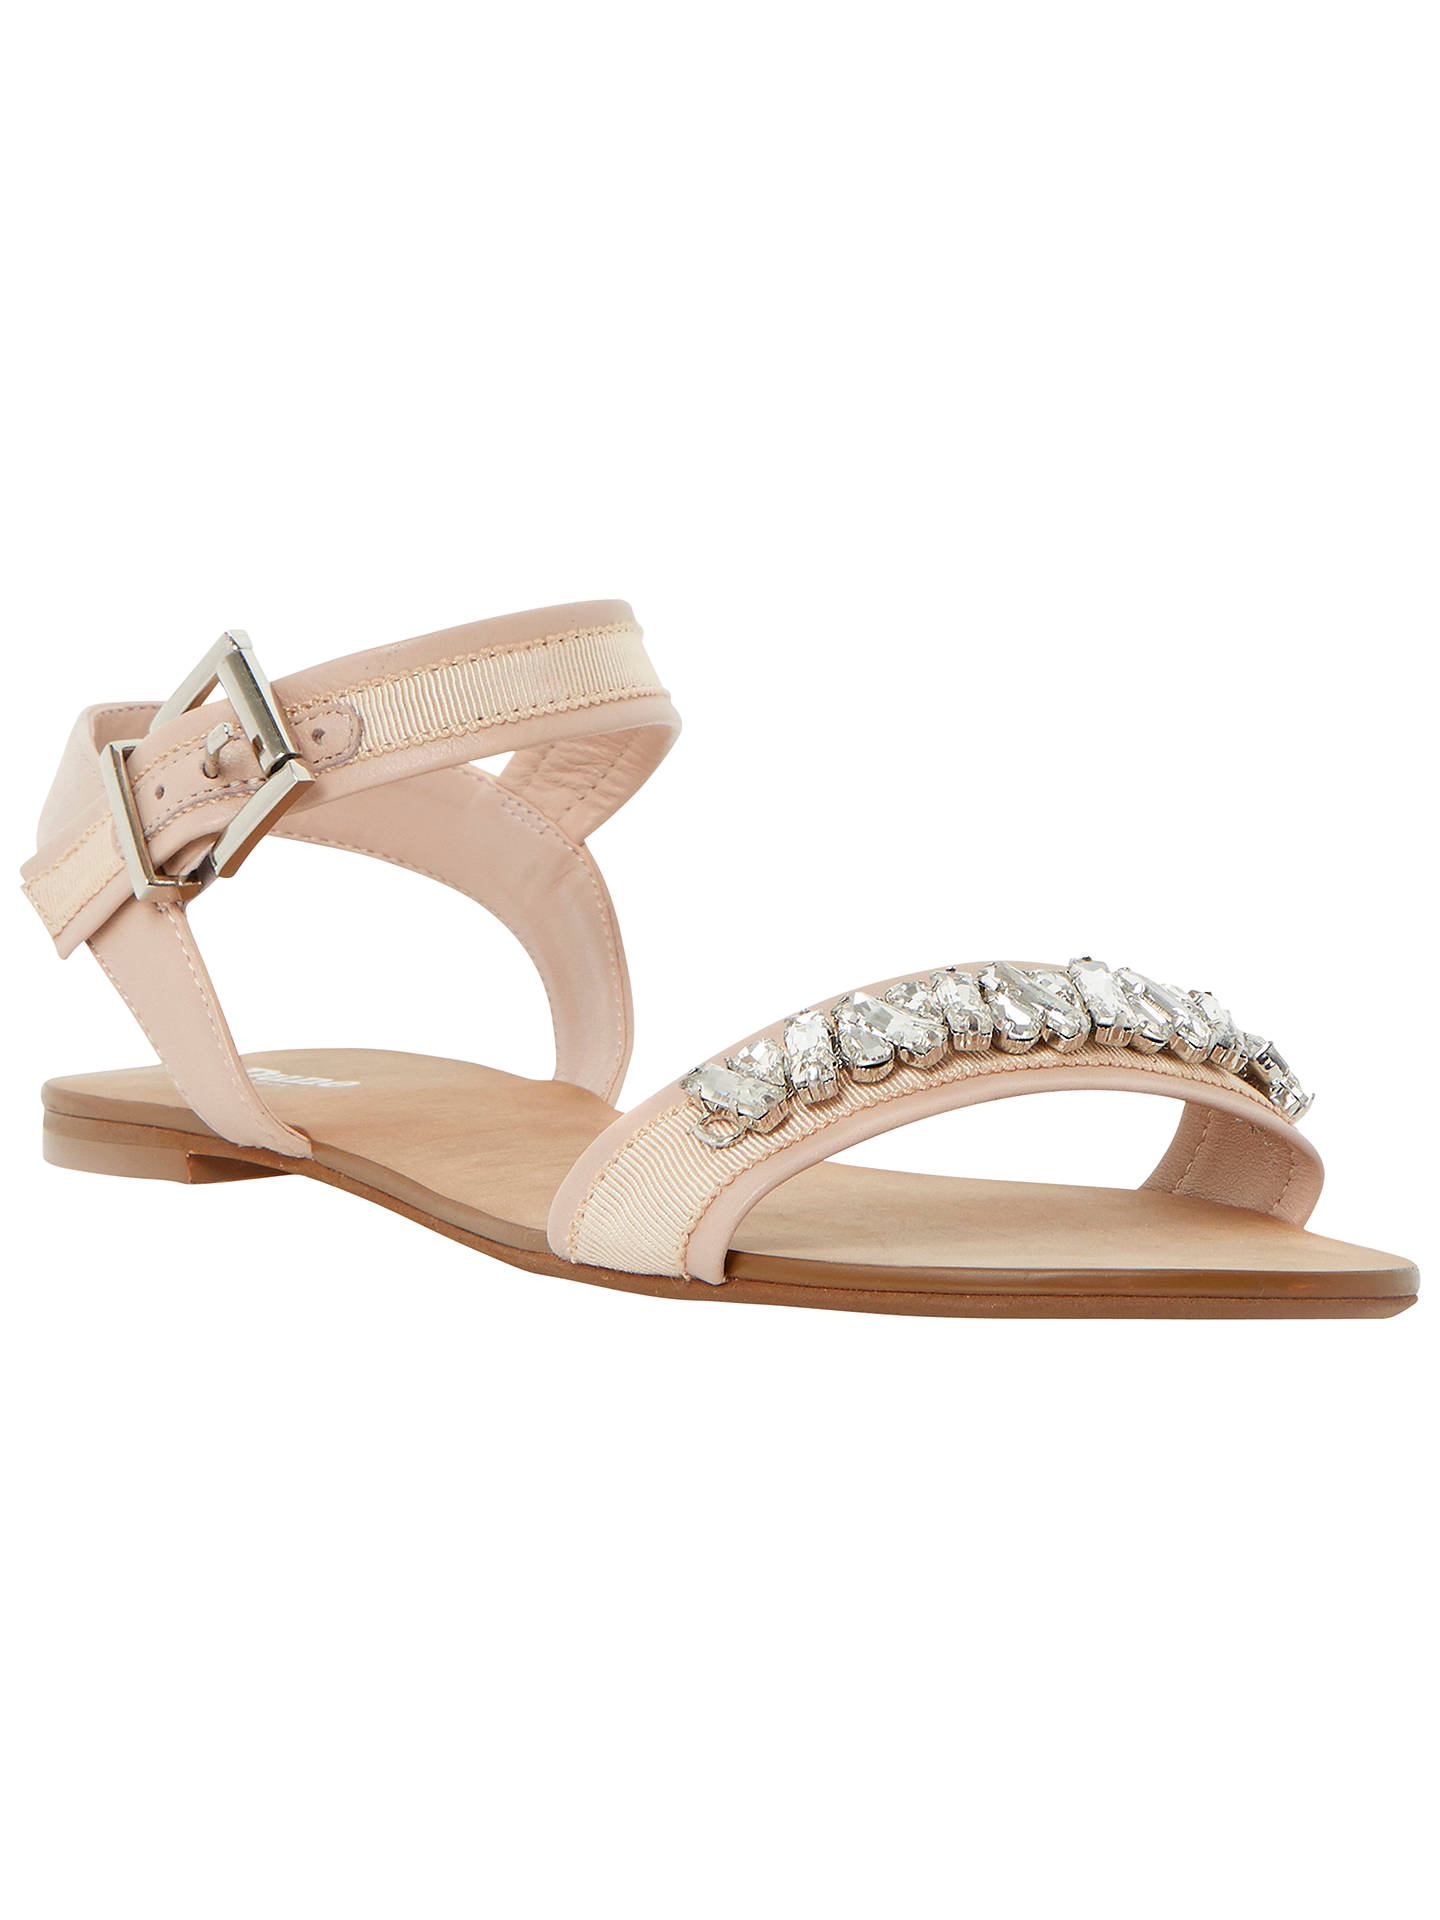 8809315230a4c BuyDune Neeve Jewelled Leather Sandals